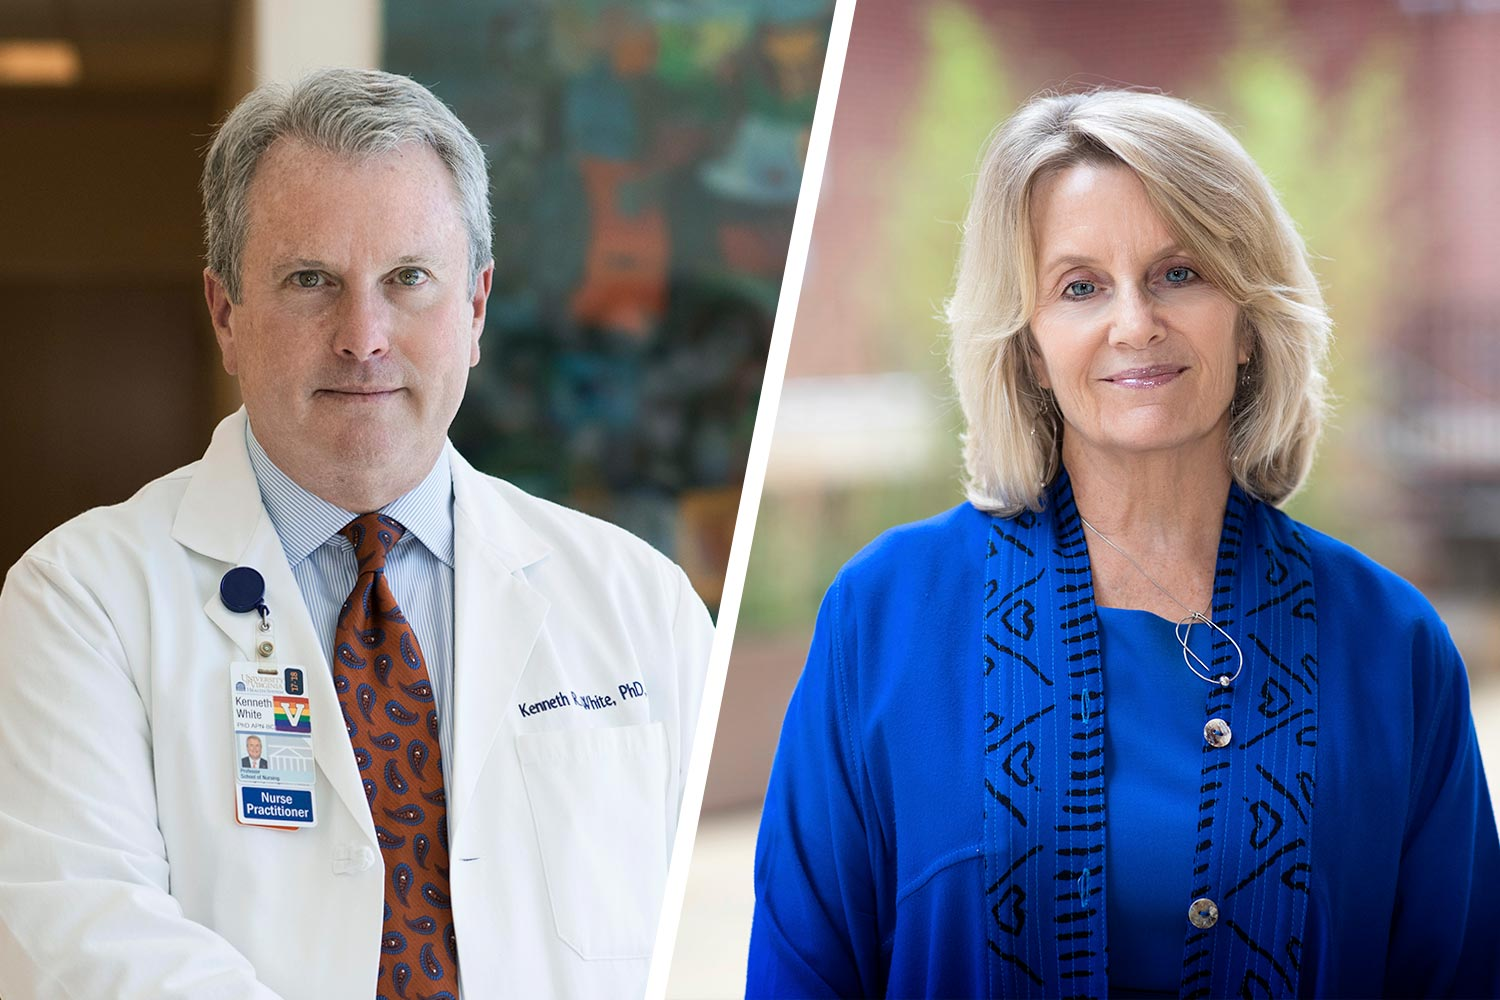 Kenneth White, the Nursing School's associate dean for strategic partnerships and innovation, and Clareen Wiencek, an associate professor of nursing, are teaching the palliative care courses.